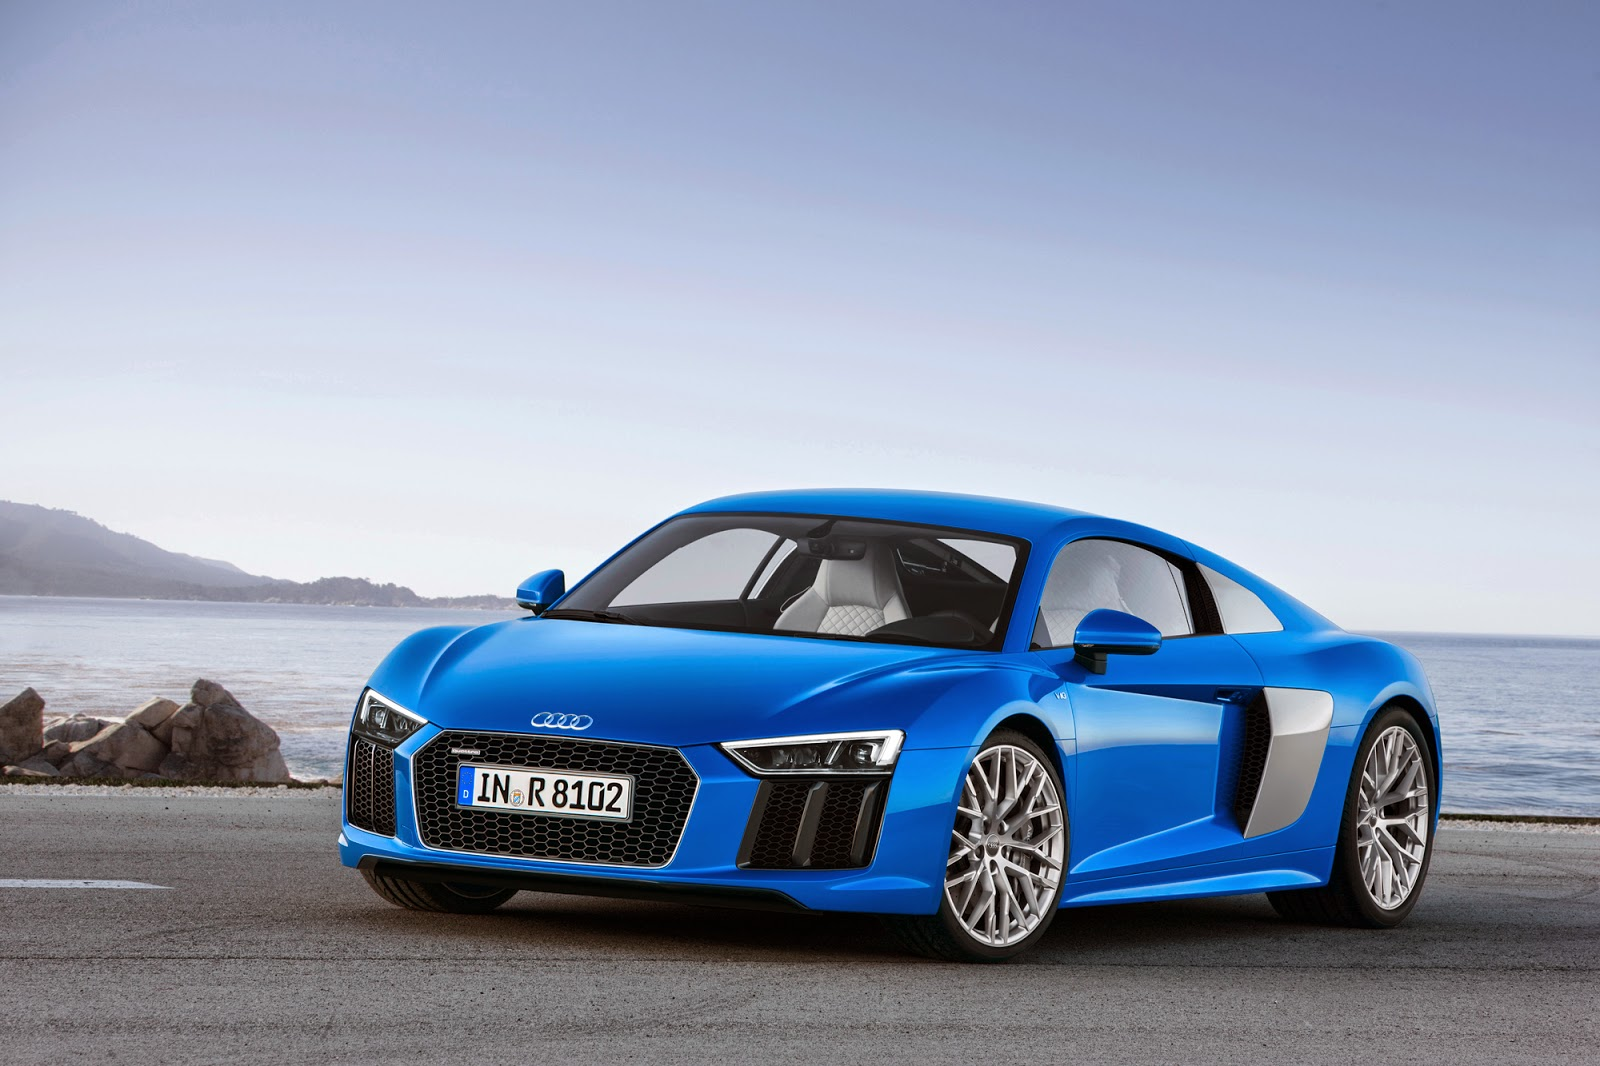 2016 Audi r8 price, interior, specs and release date